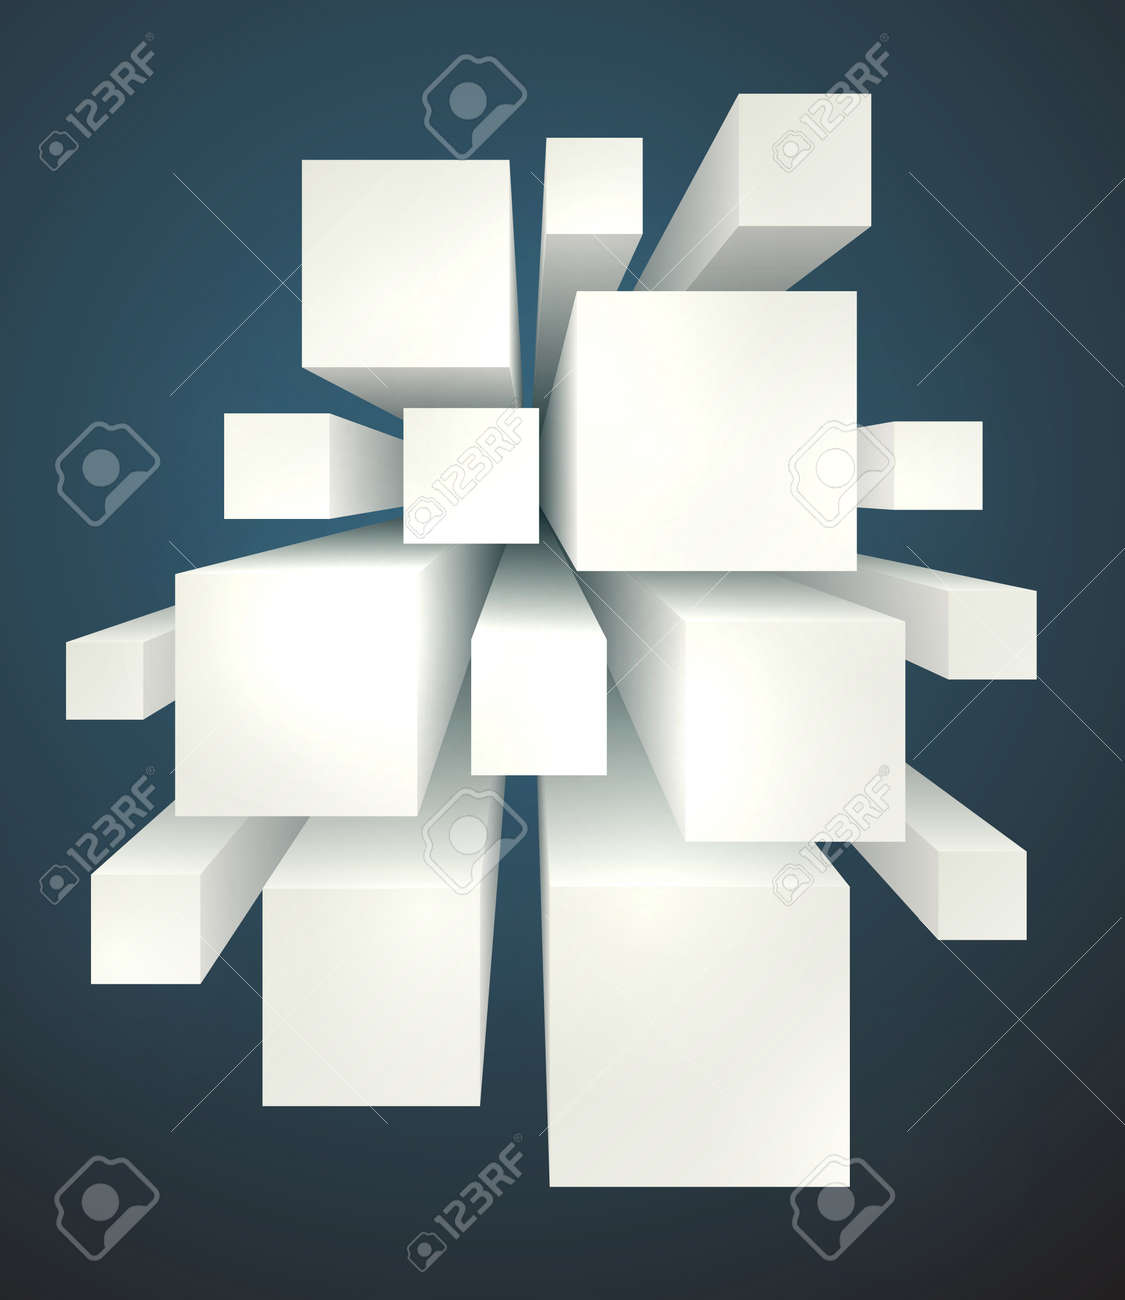 cool realistic geometric shapes background with blank copyspaces